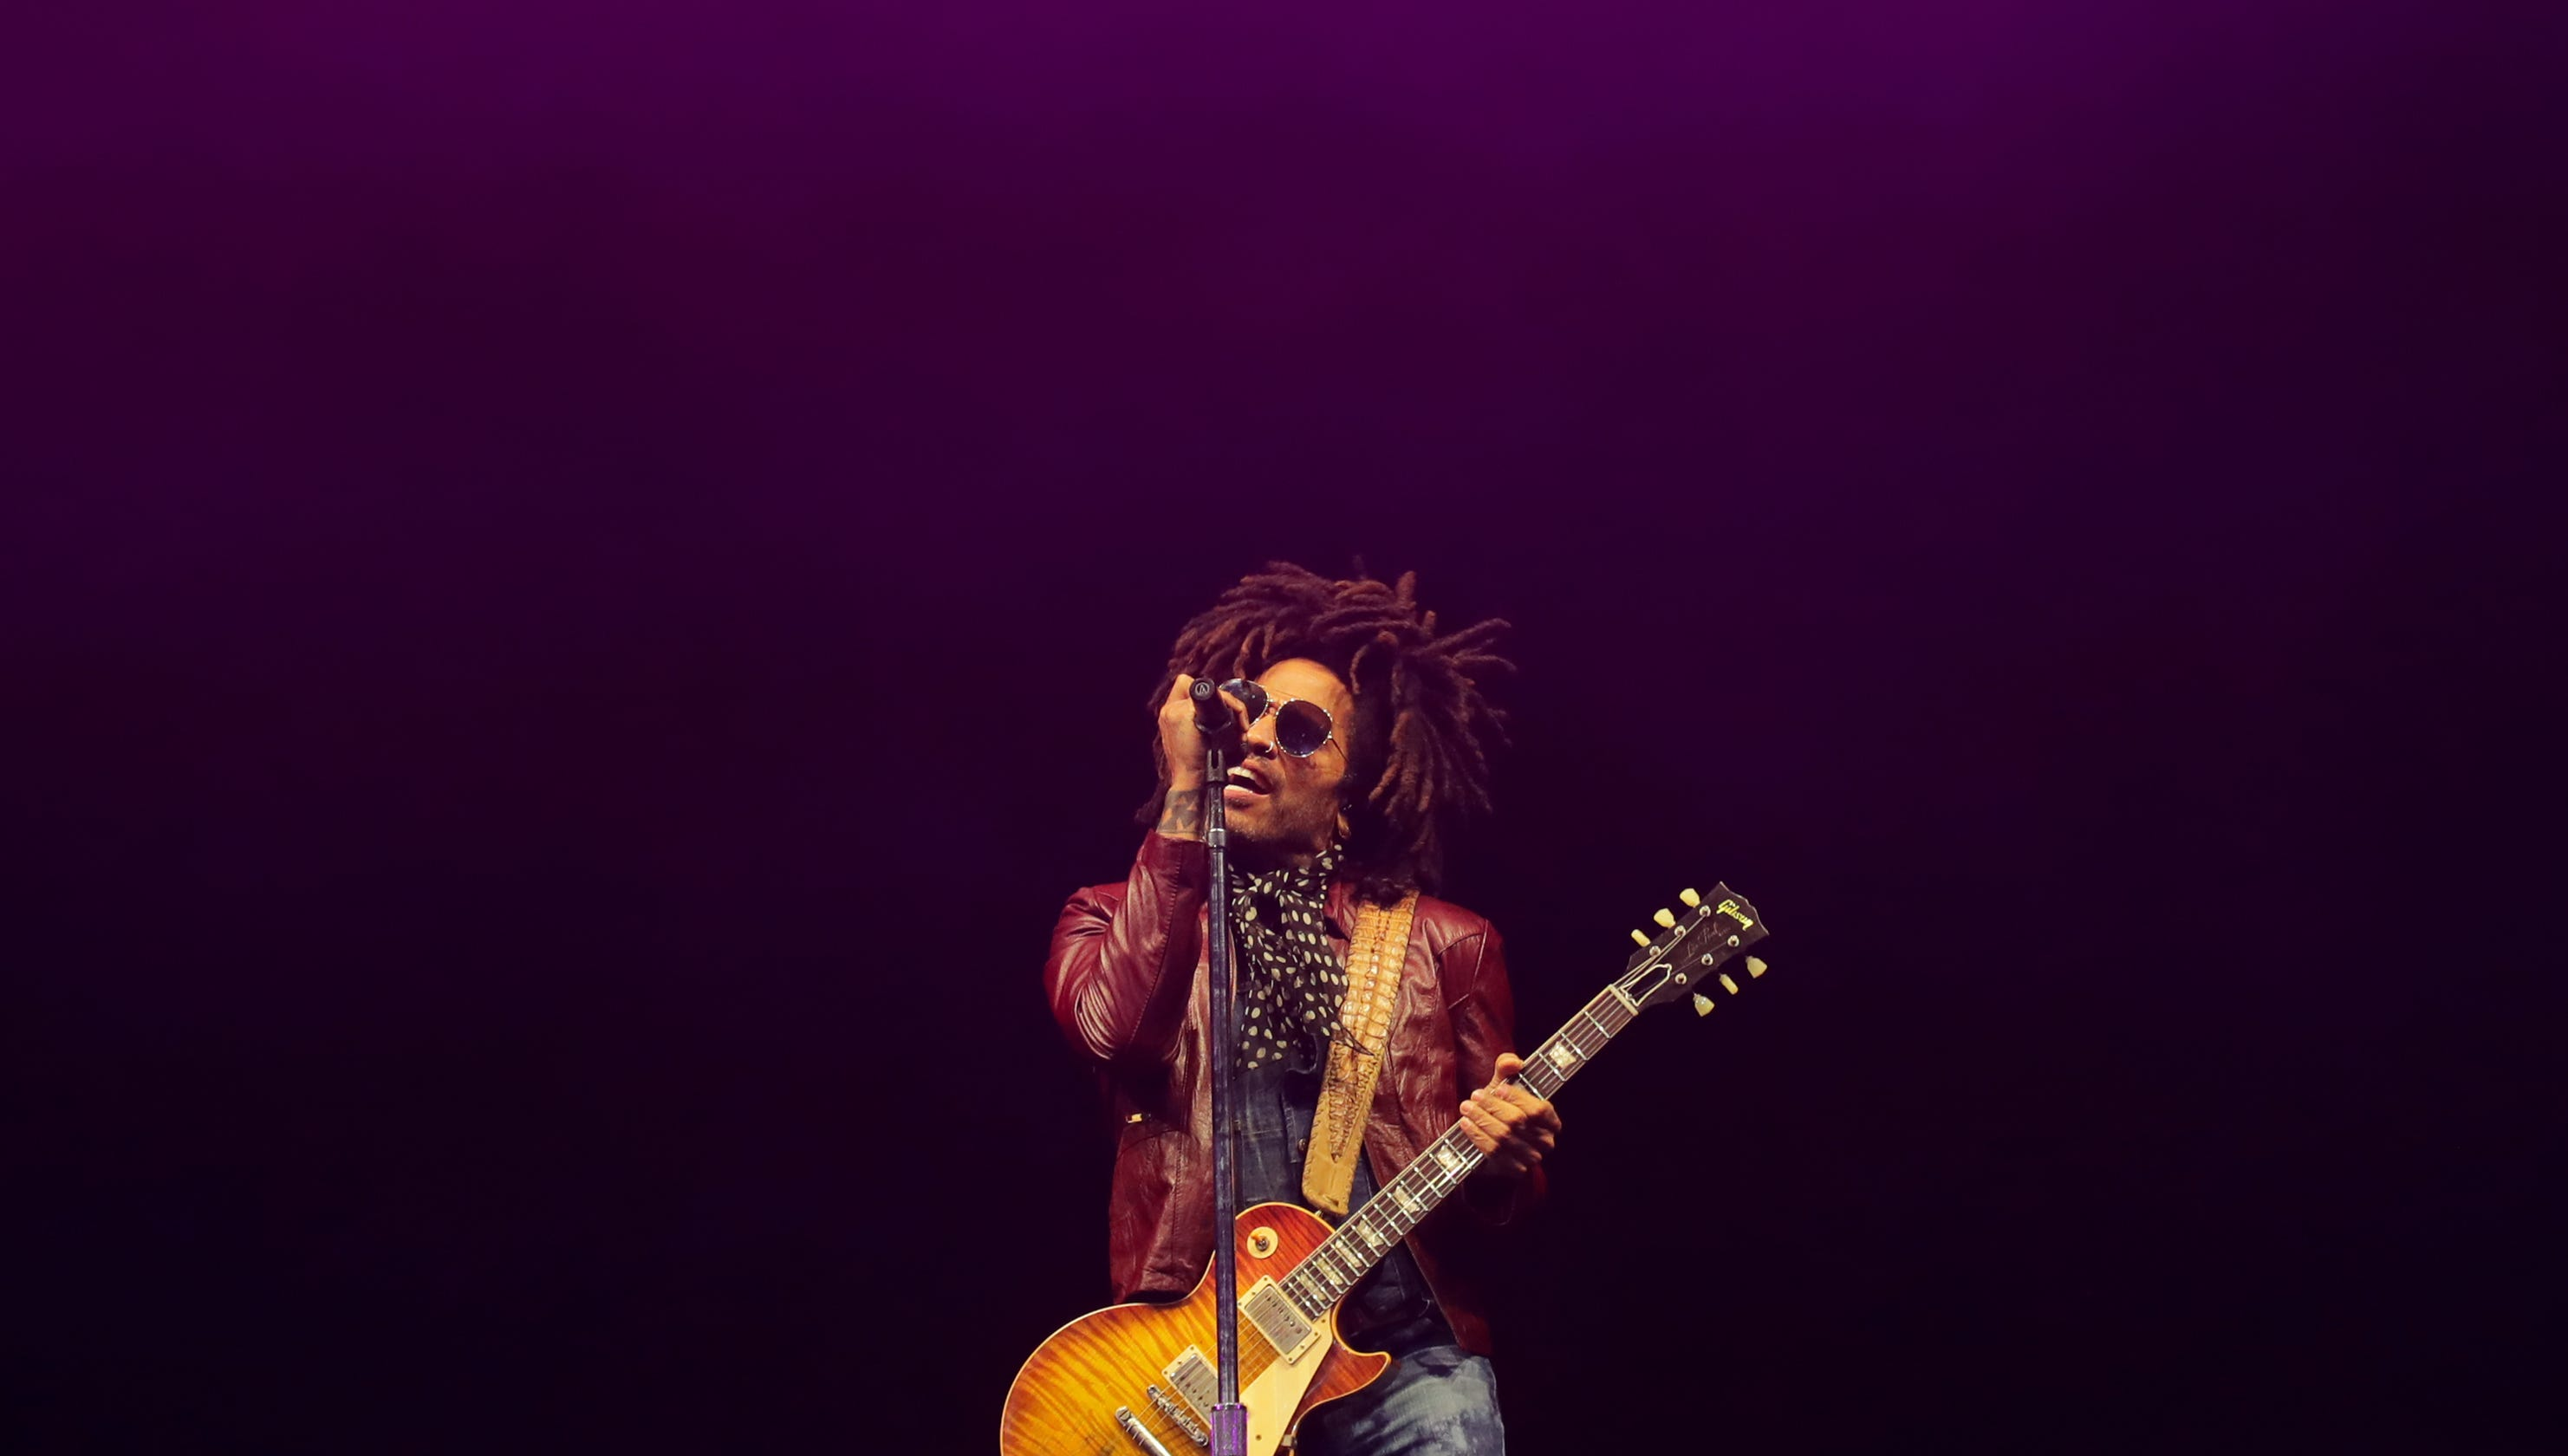 When Lenny Kravitz lost his mother, he turned to Johnny Cash